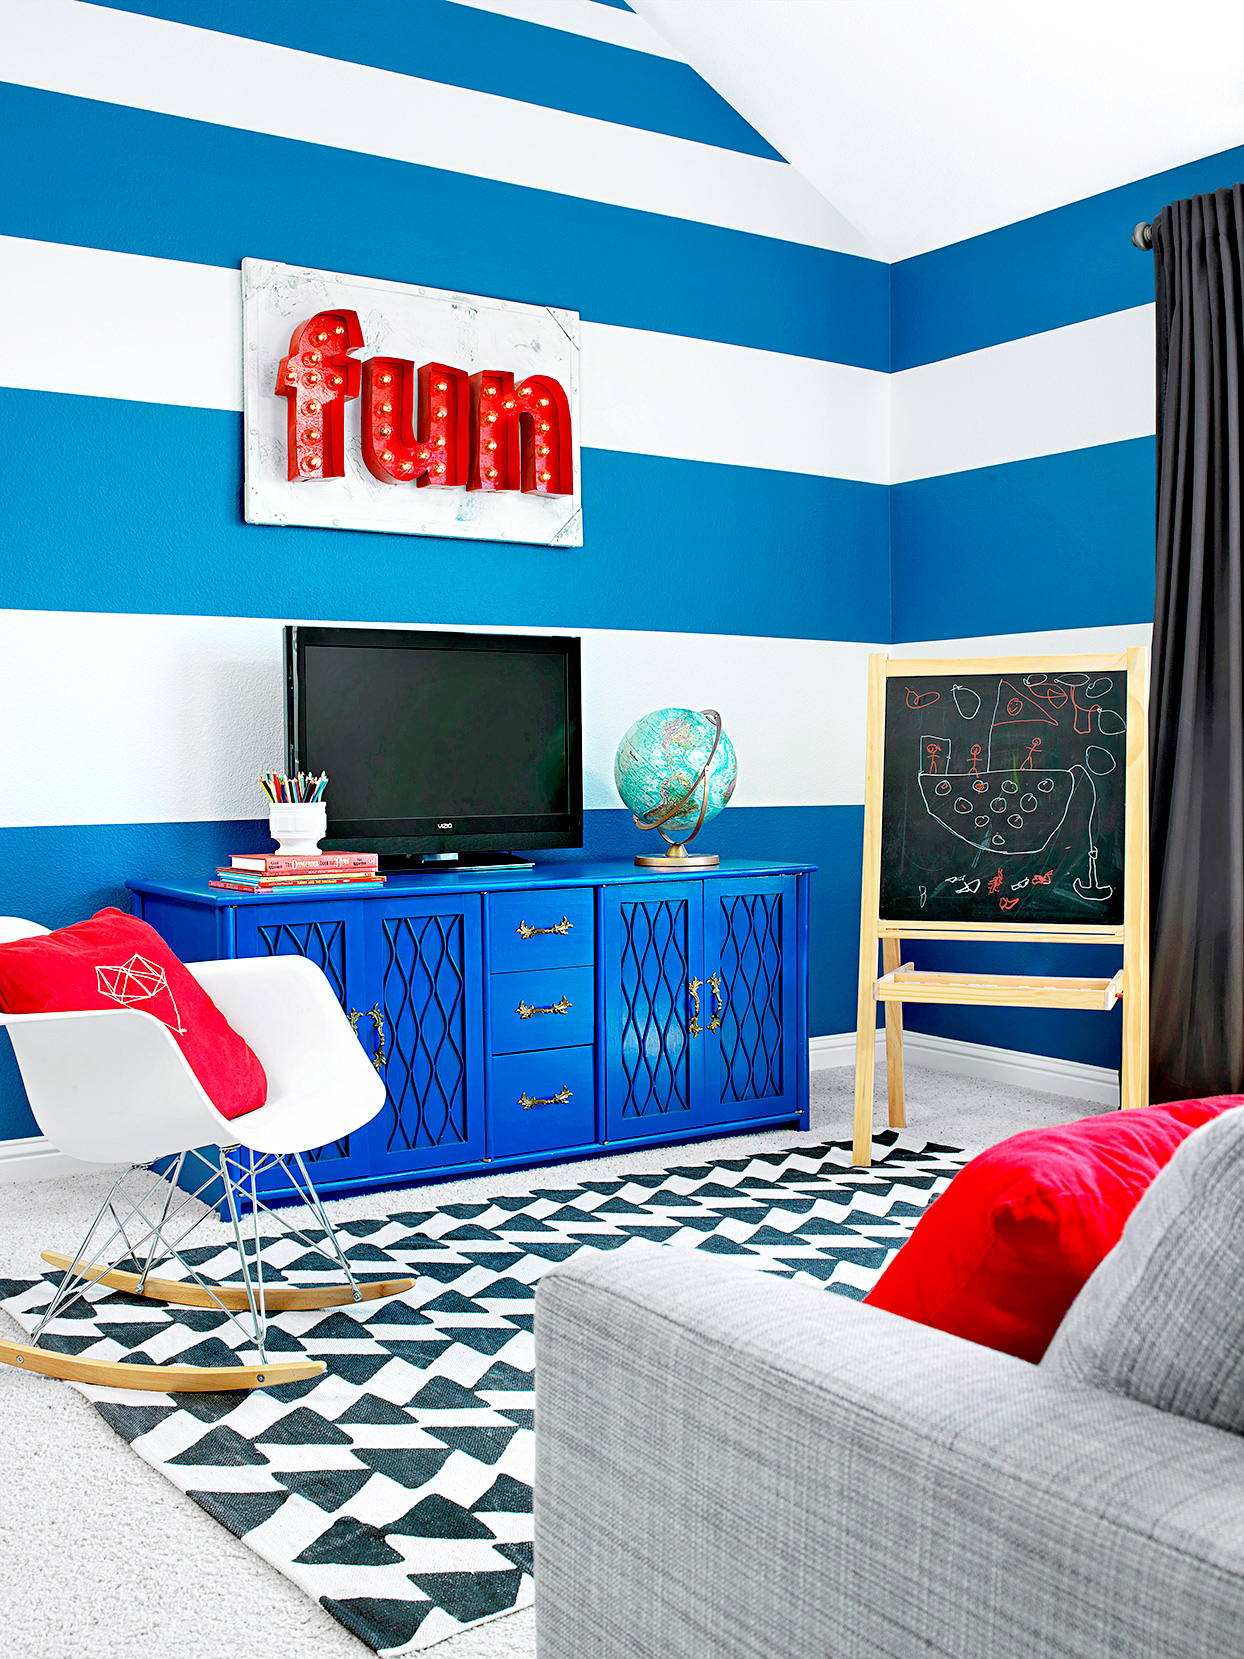 Room Paint Designs: 7 Wall Painting Ideas To Transform Any Room Into A Work Of